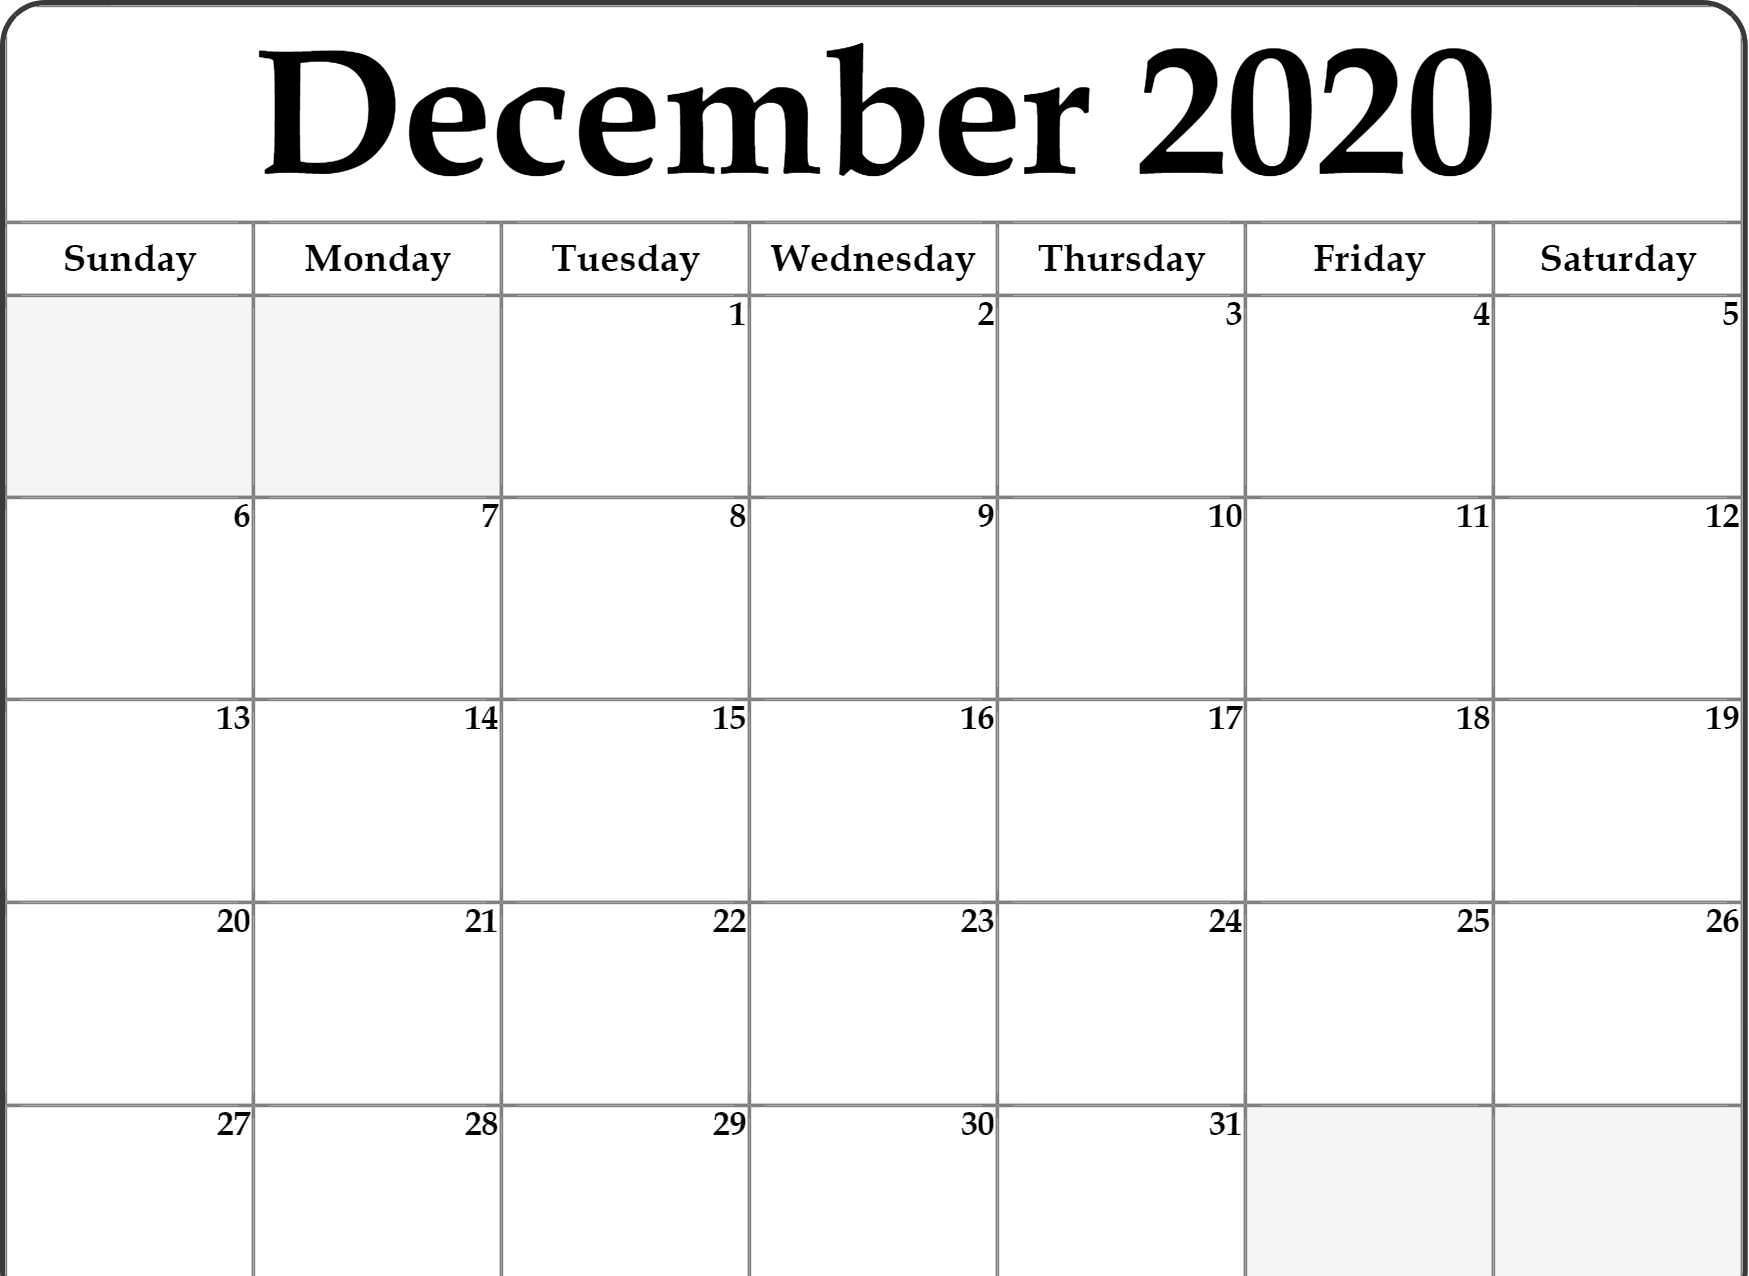 December 2020 Calendar Wallpapers  Top Free December 2020 intended for Calander For December 2020